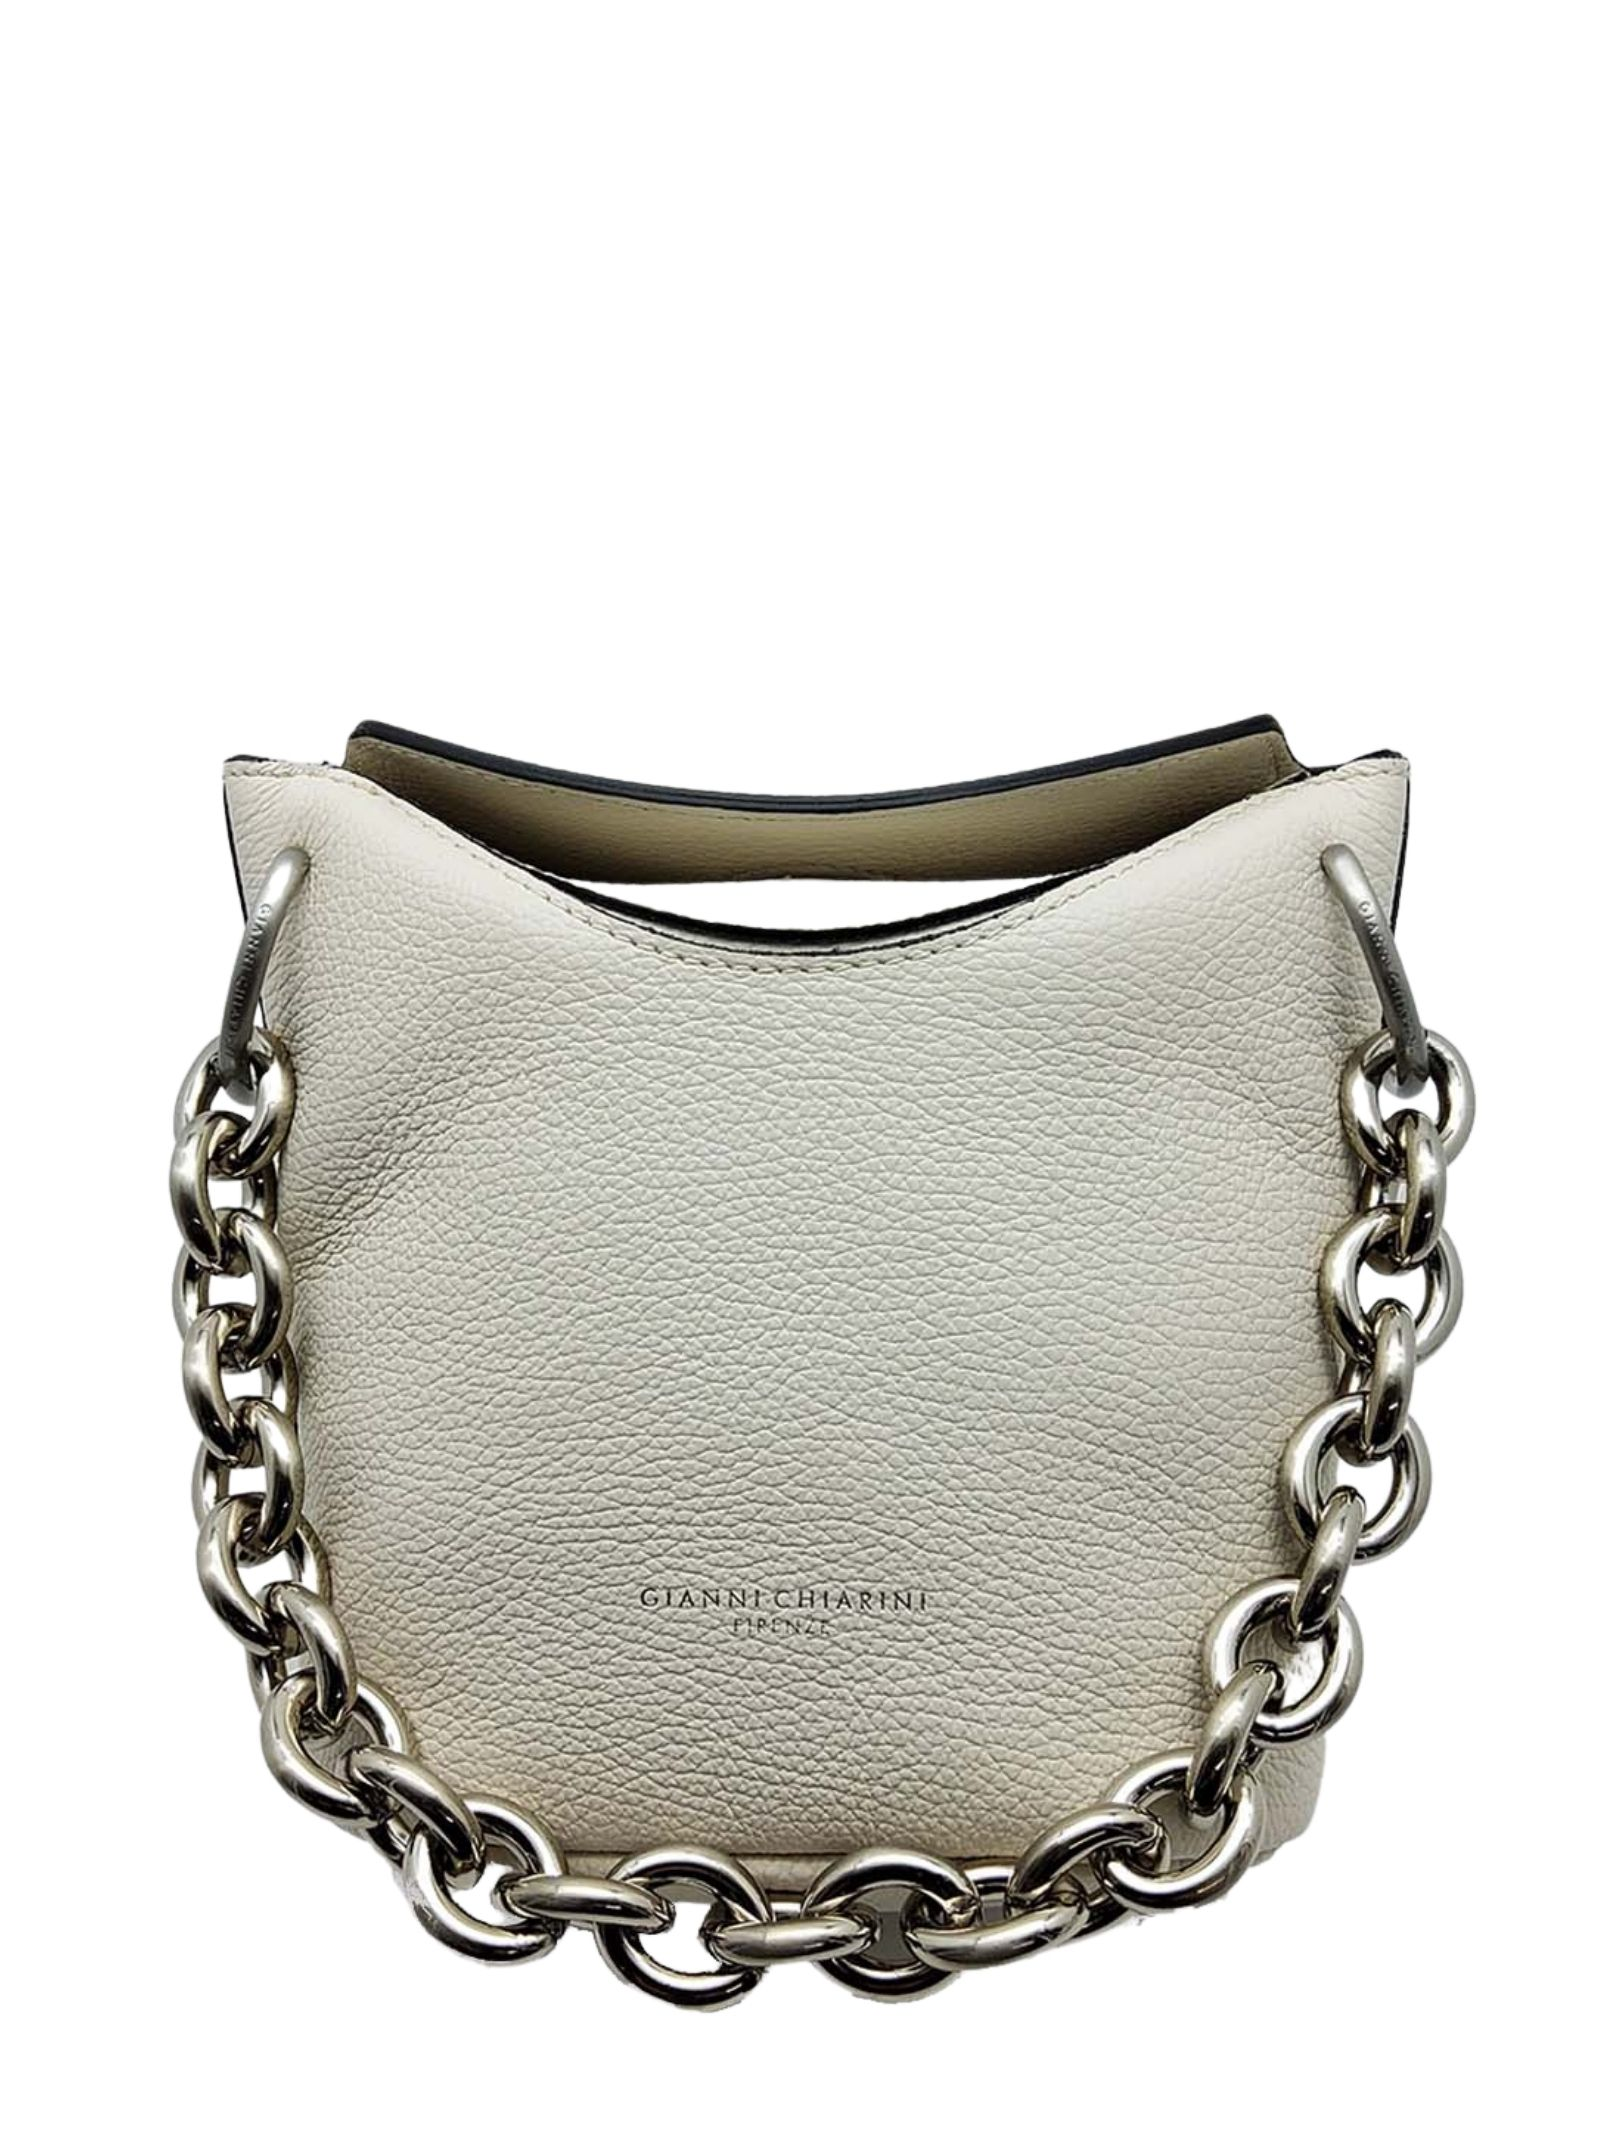 Women's Mini Sophia Satchel Bag In Cream Leather With Silver Chain And Adjustable And Removable Shoulder Strap Gianni Chiarini | Bags and backpacks | BS85153890